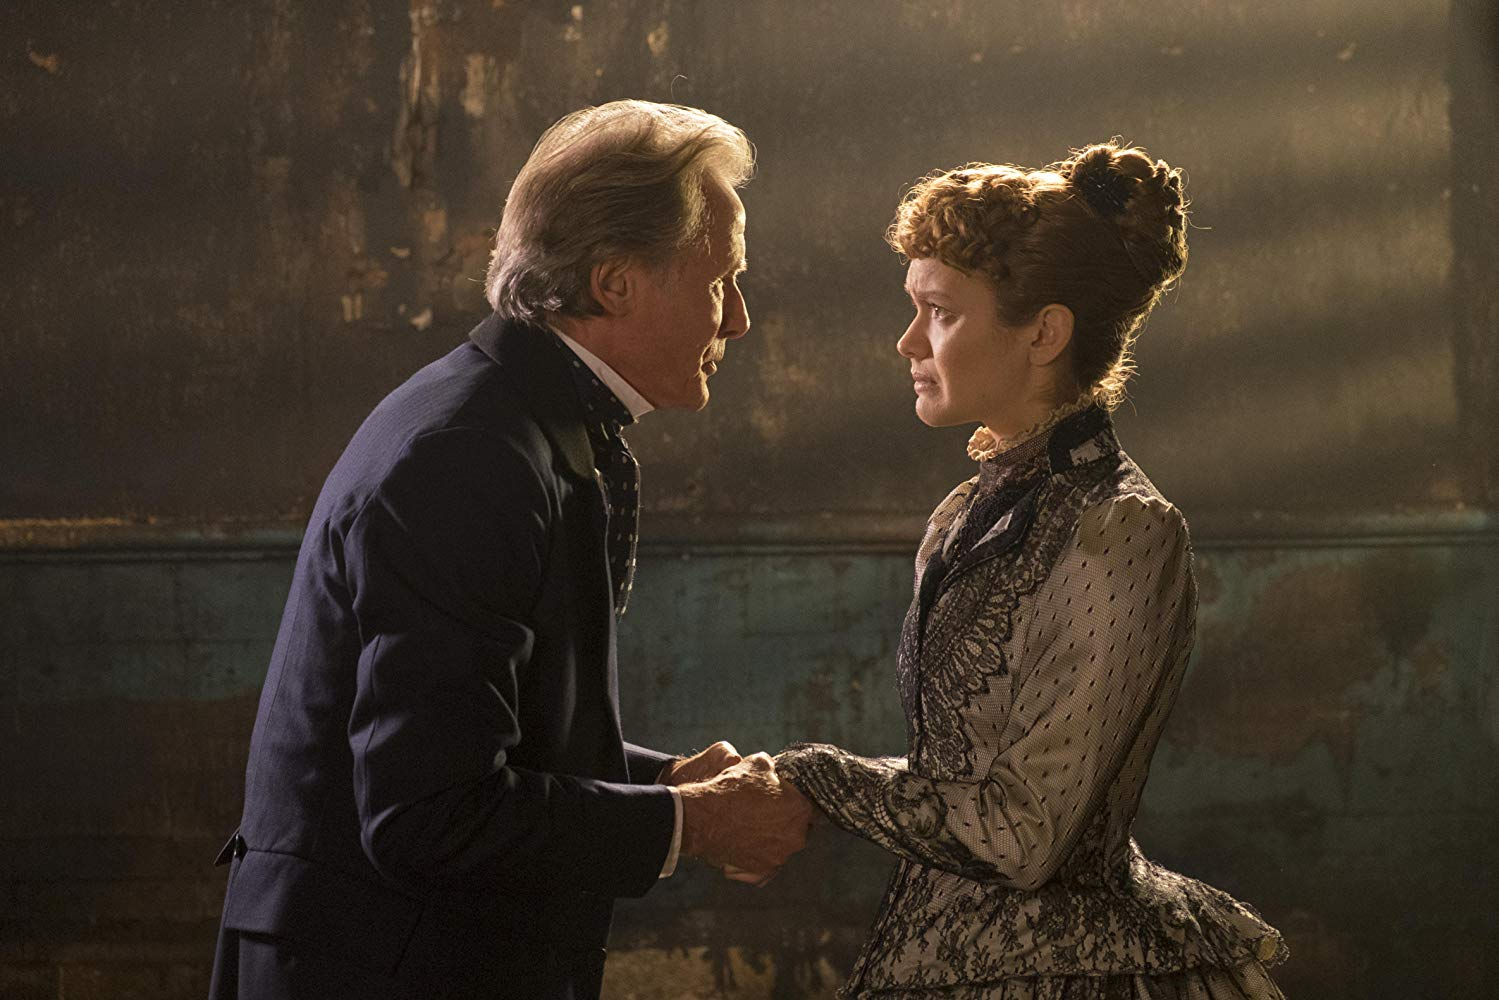 Bill Nighy and Olivia Cooke in The Limehouse Golem. Number 9 Films.